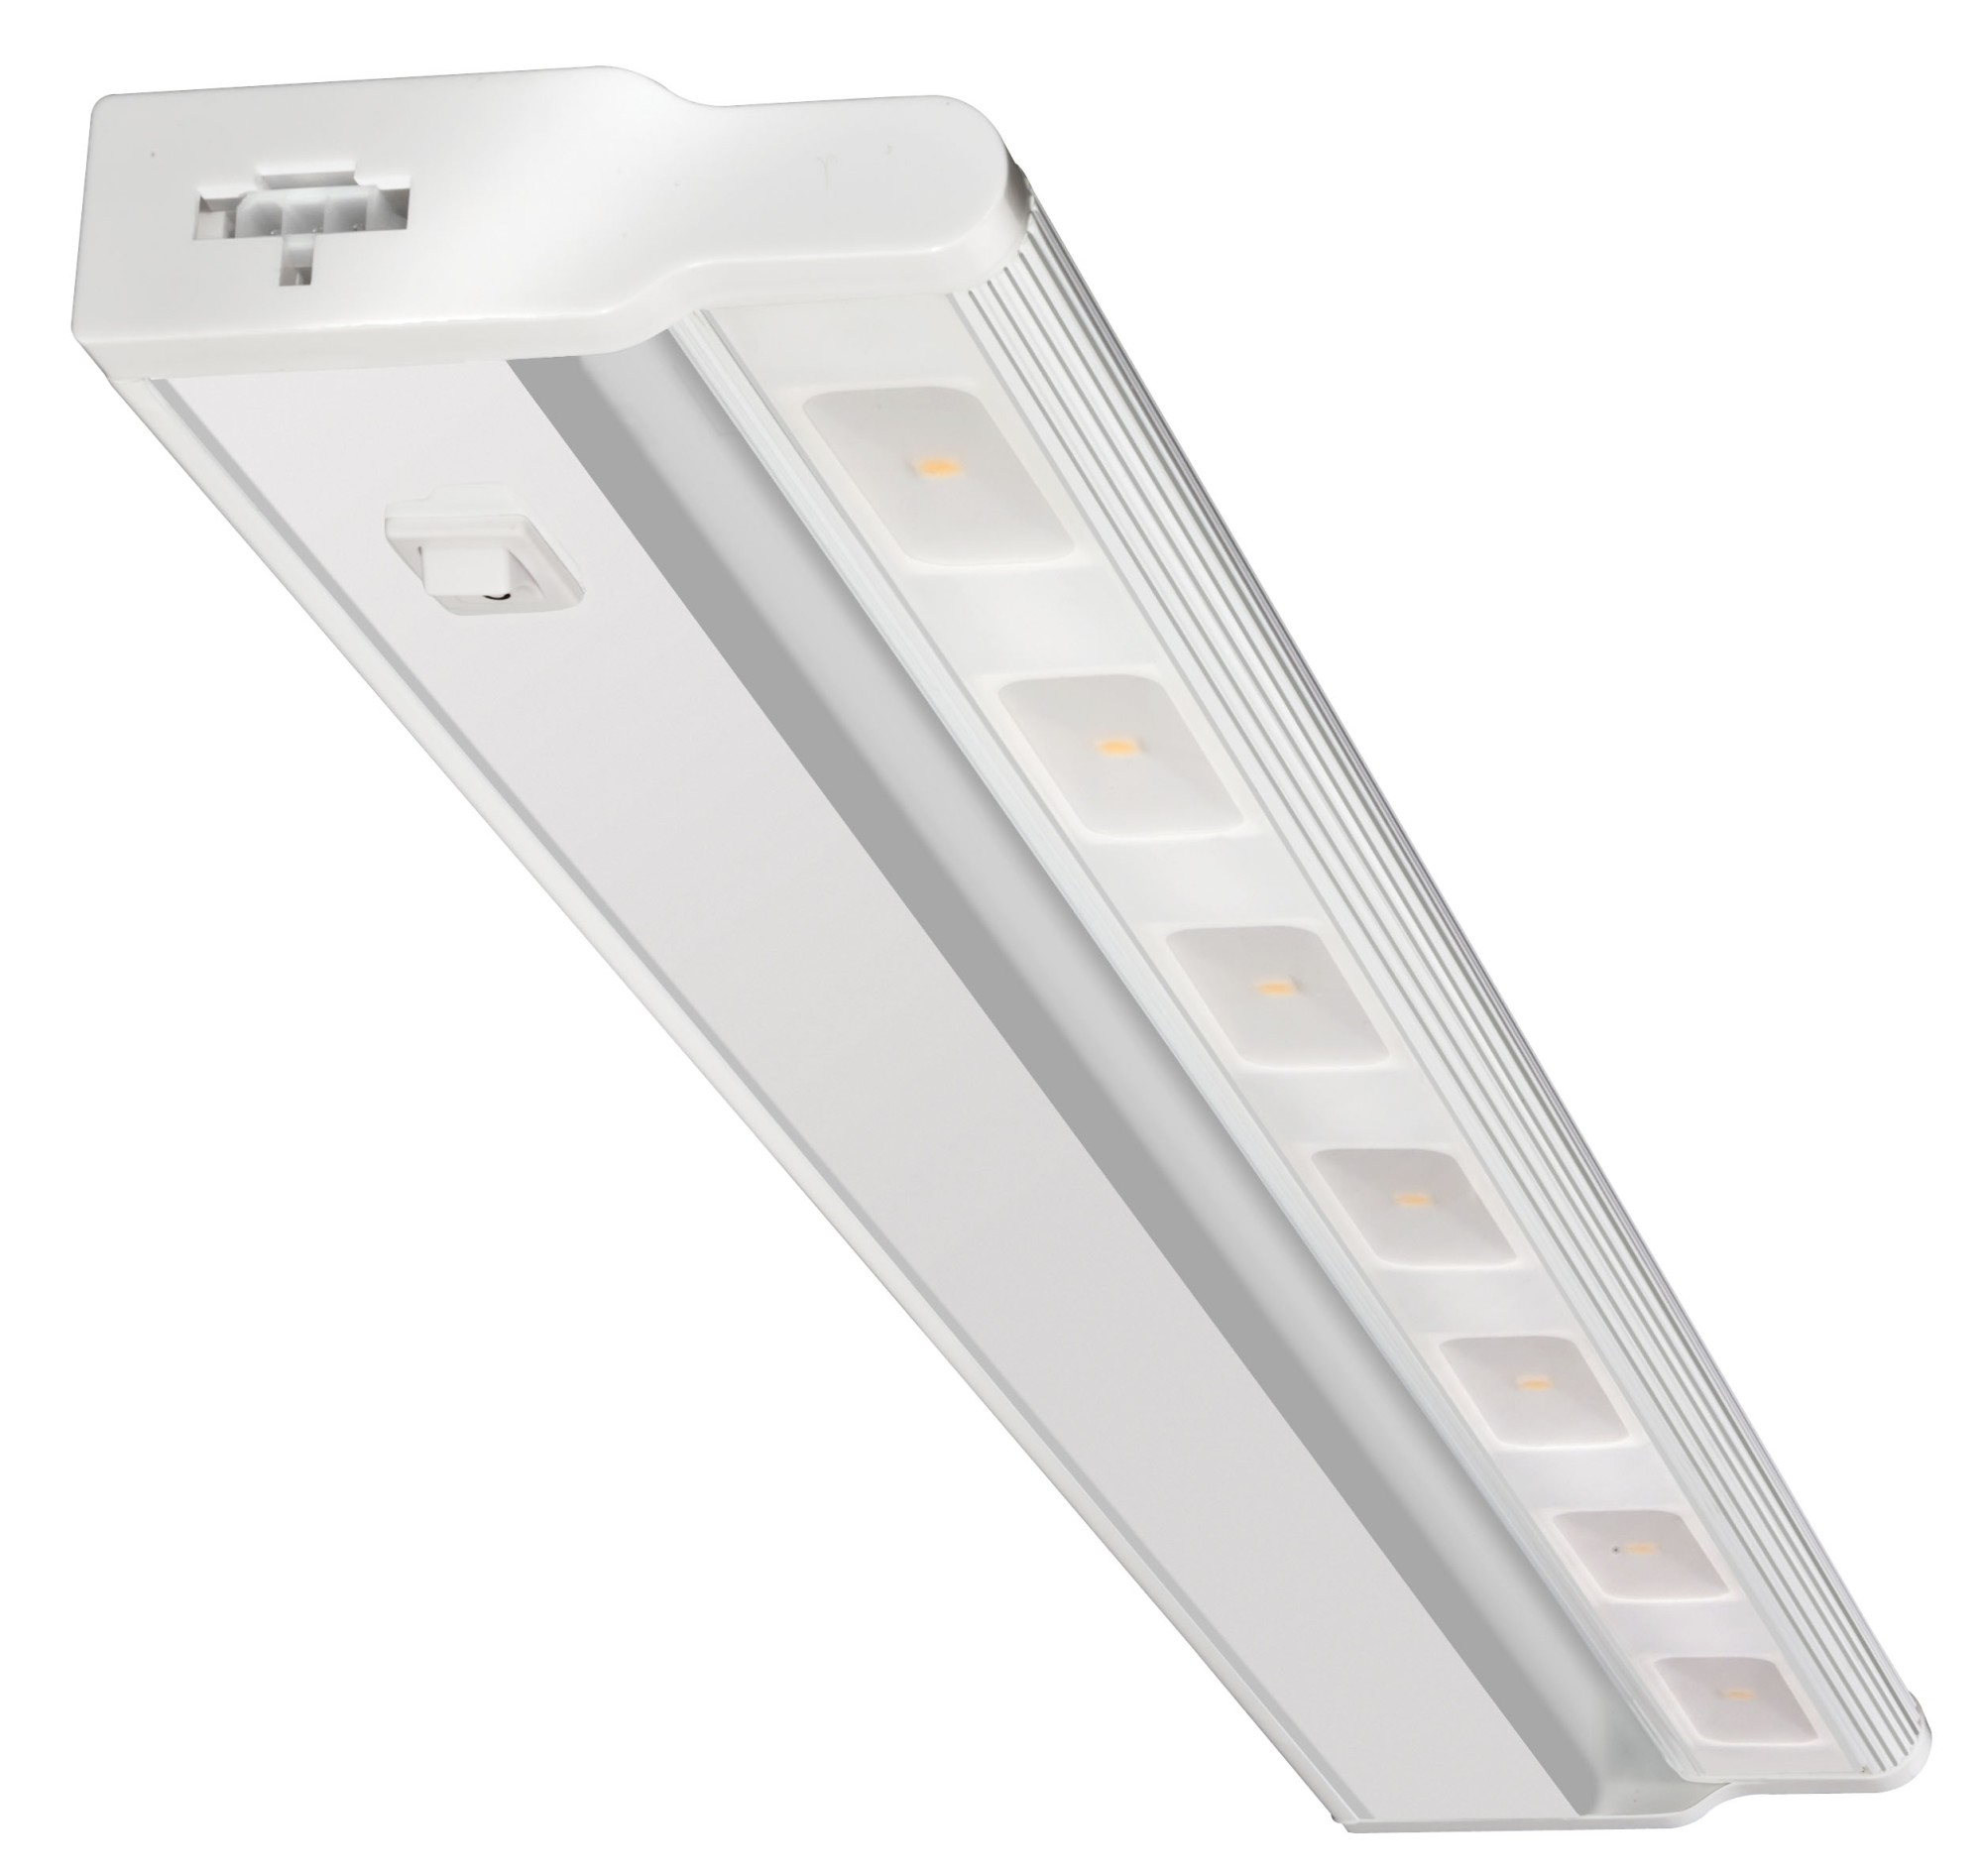 "Lithonia Lighting Ucld 24In 30K 90Cri Swr M4 24"" Wide 13 Watt Integrated Led 120 - White"